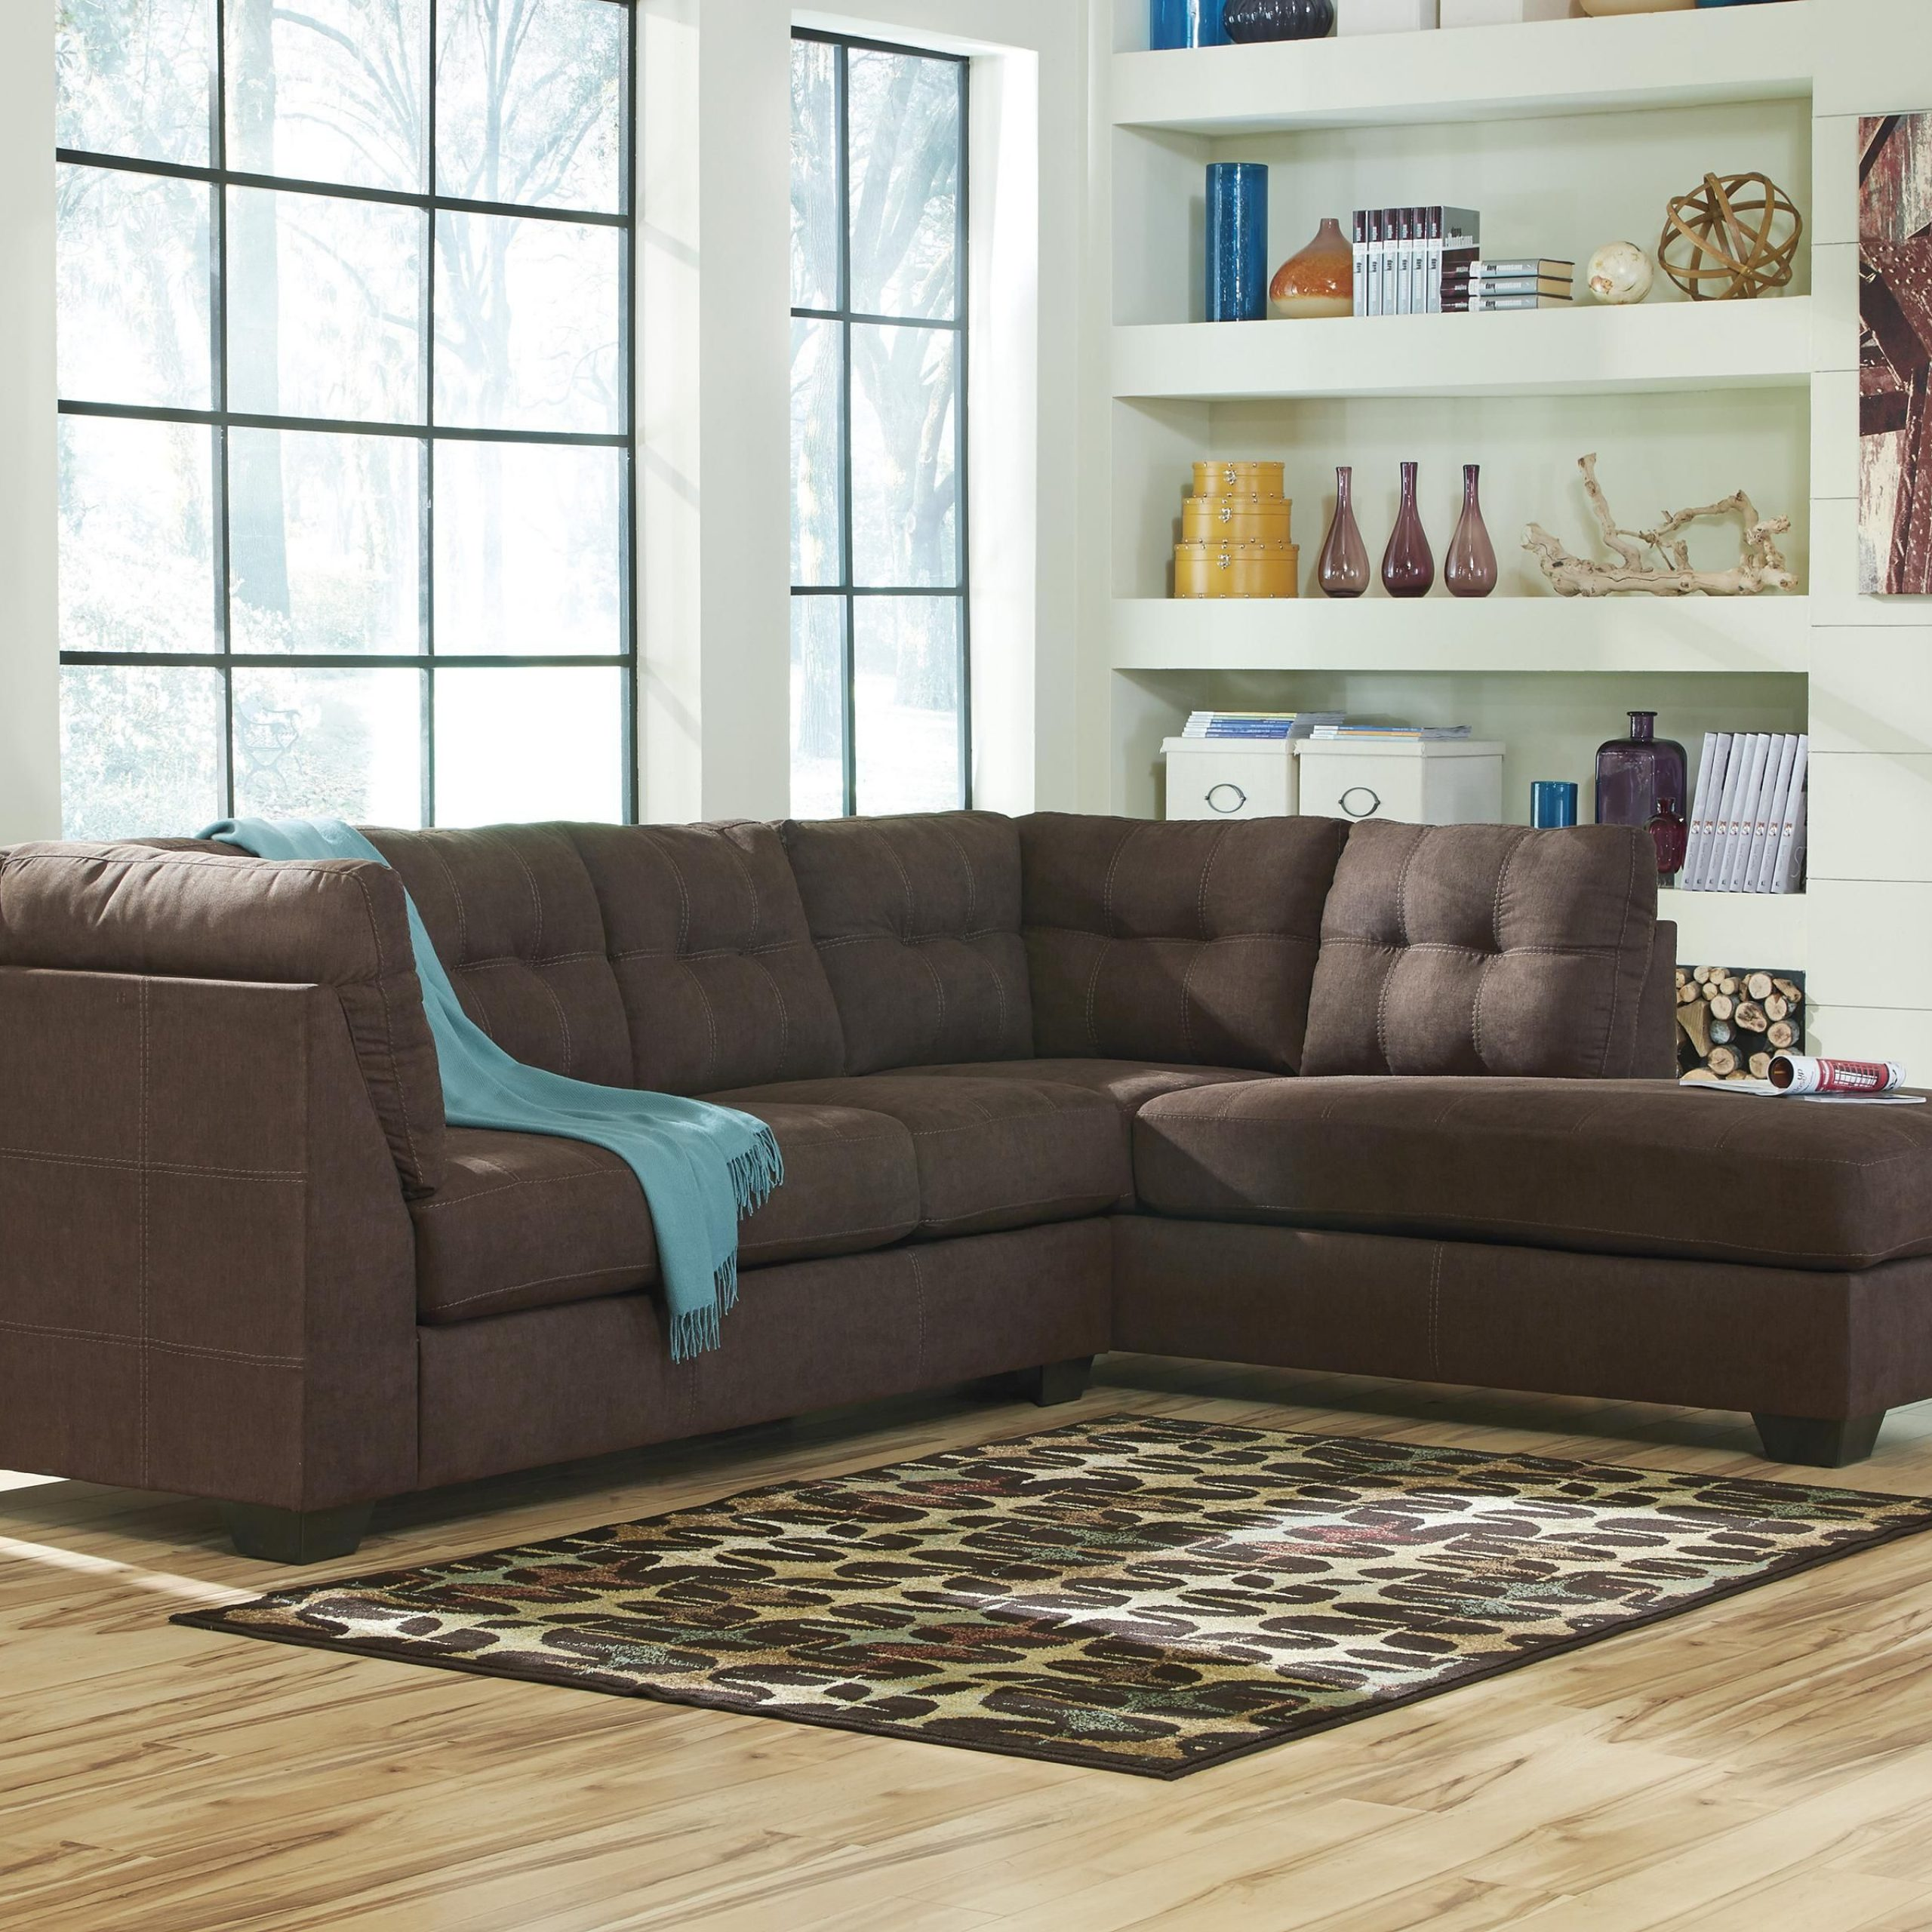 Most Current 2Pc Maddox Right Arm Facing Sectional Sofas With Chaise Brown Pertaining To Maier – Walnut 2 Piece Sectional With Left Chaise (View 2 of 25)